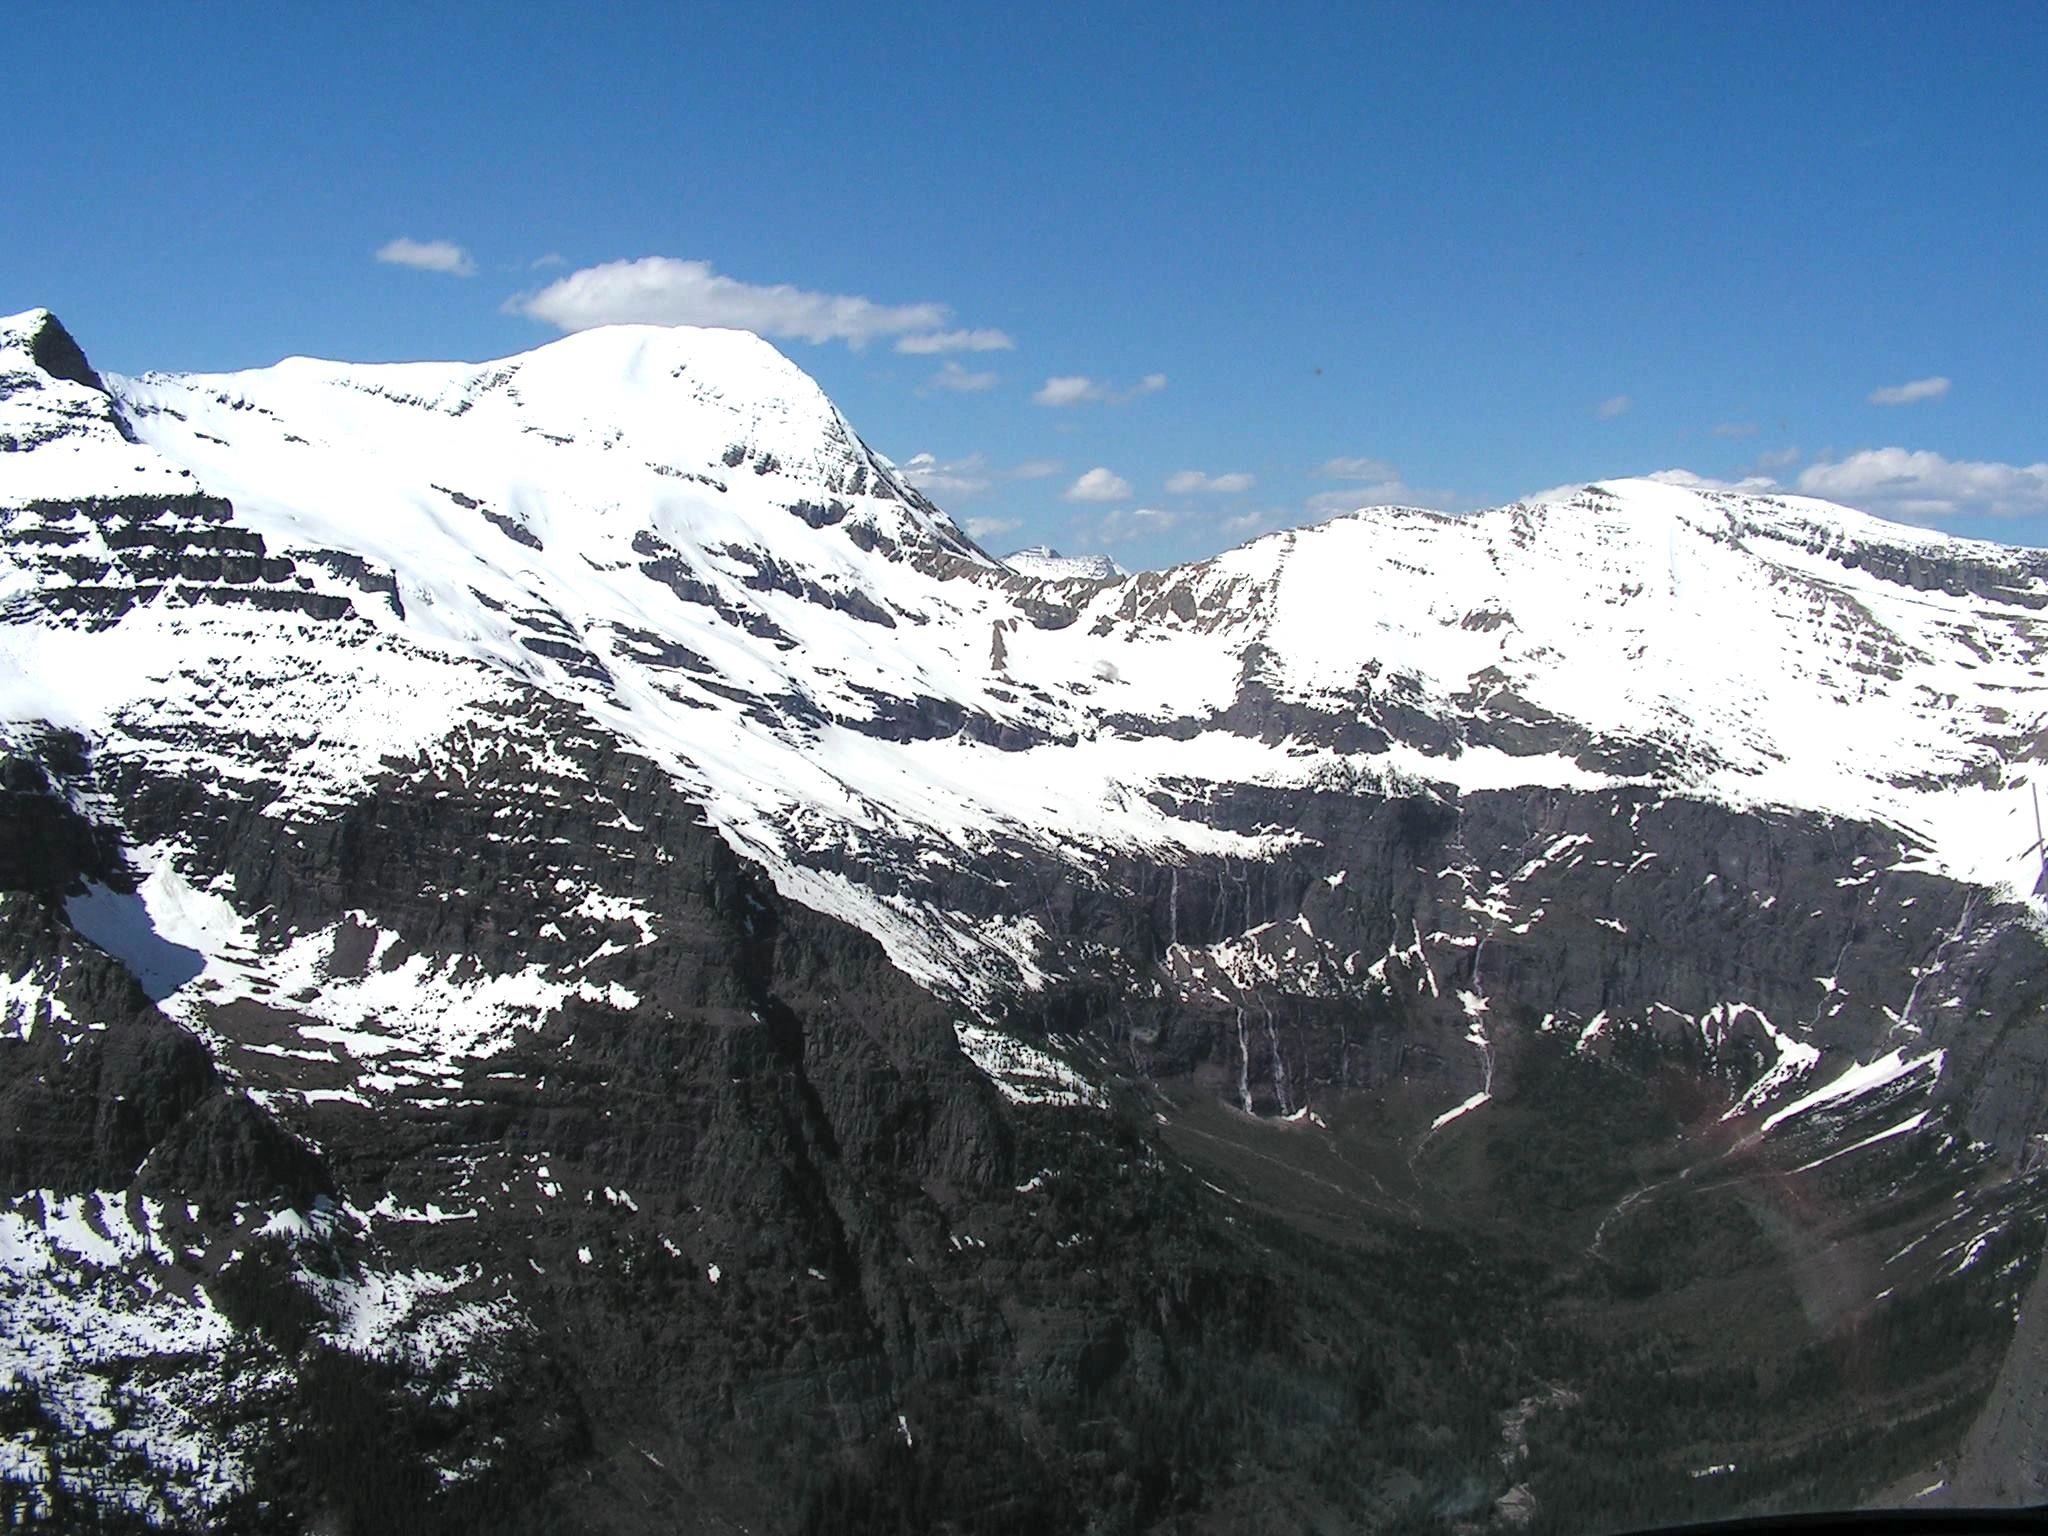 Picture I took in Glacier National Park from a helicopter.